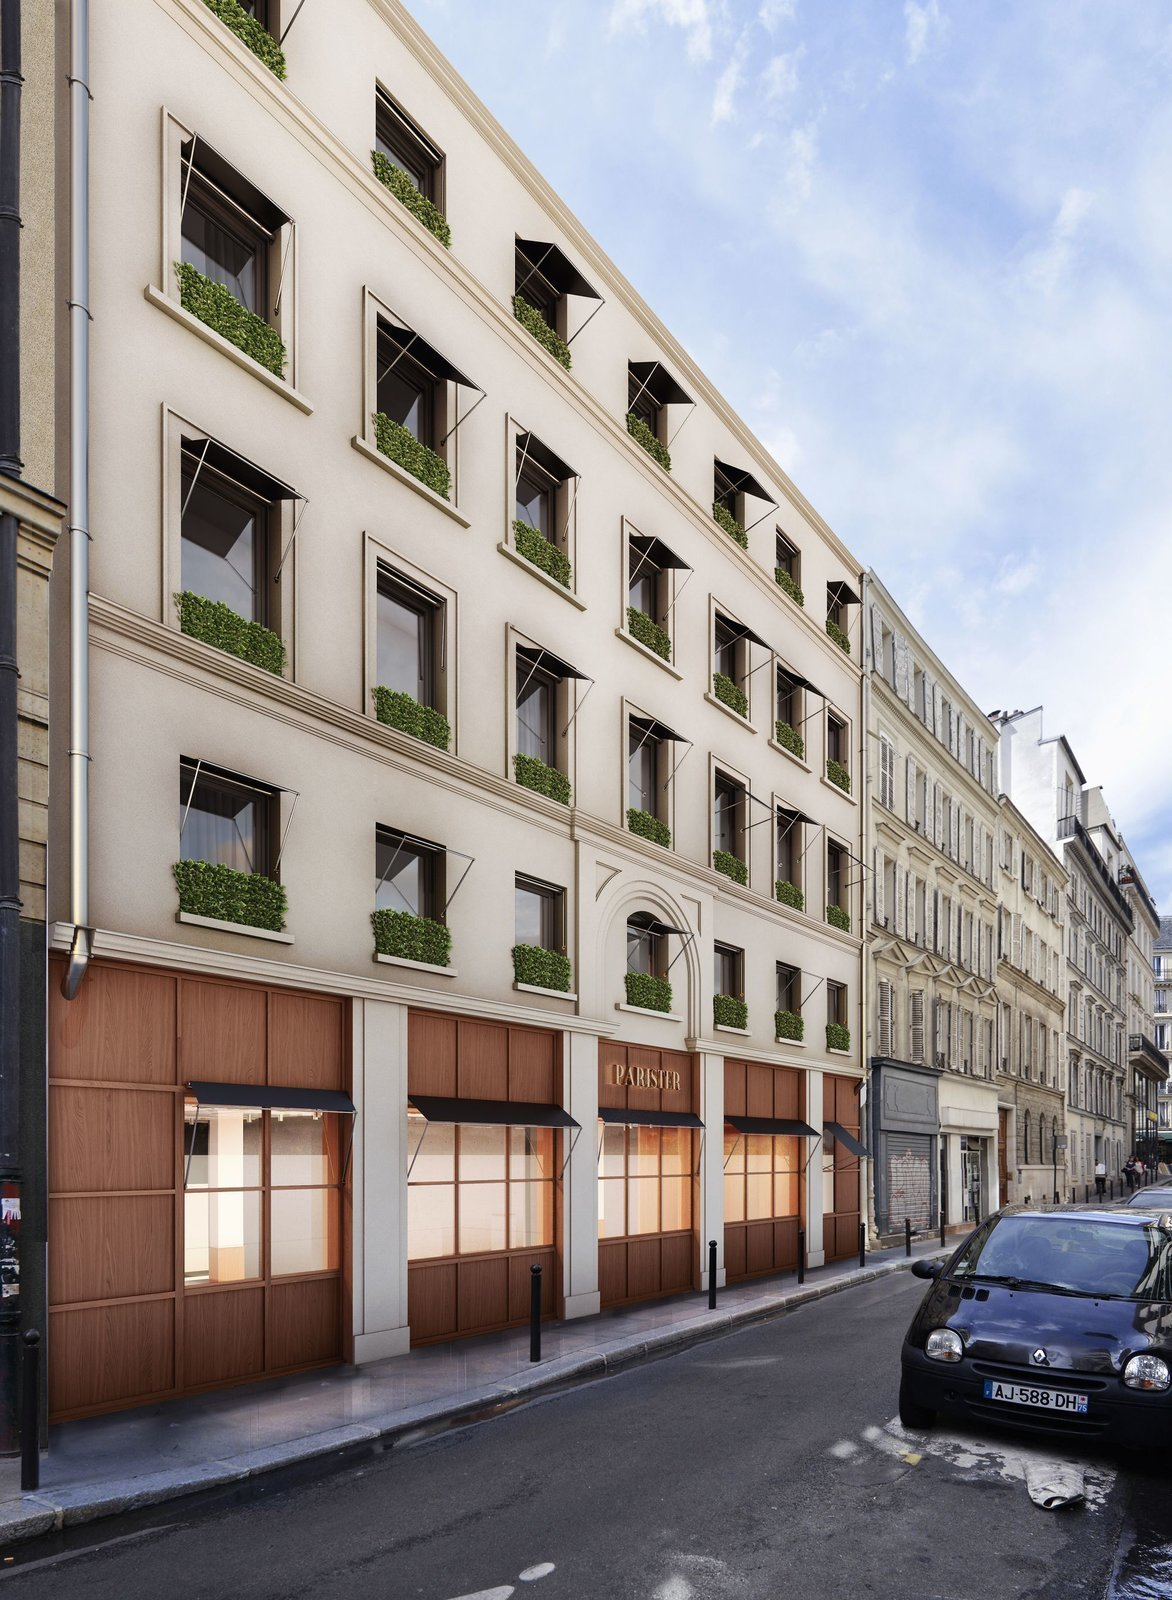 Exterior  Photo 3 of 8 in A New Hotel in Paris That's Designed to Give Guests a Taste of Modern Parisian Living